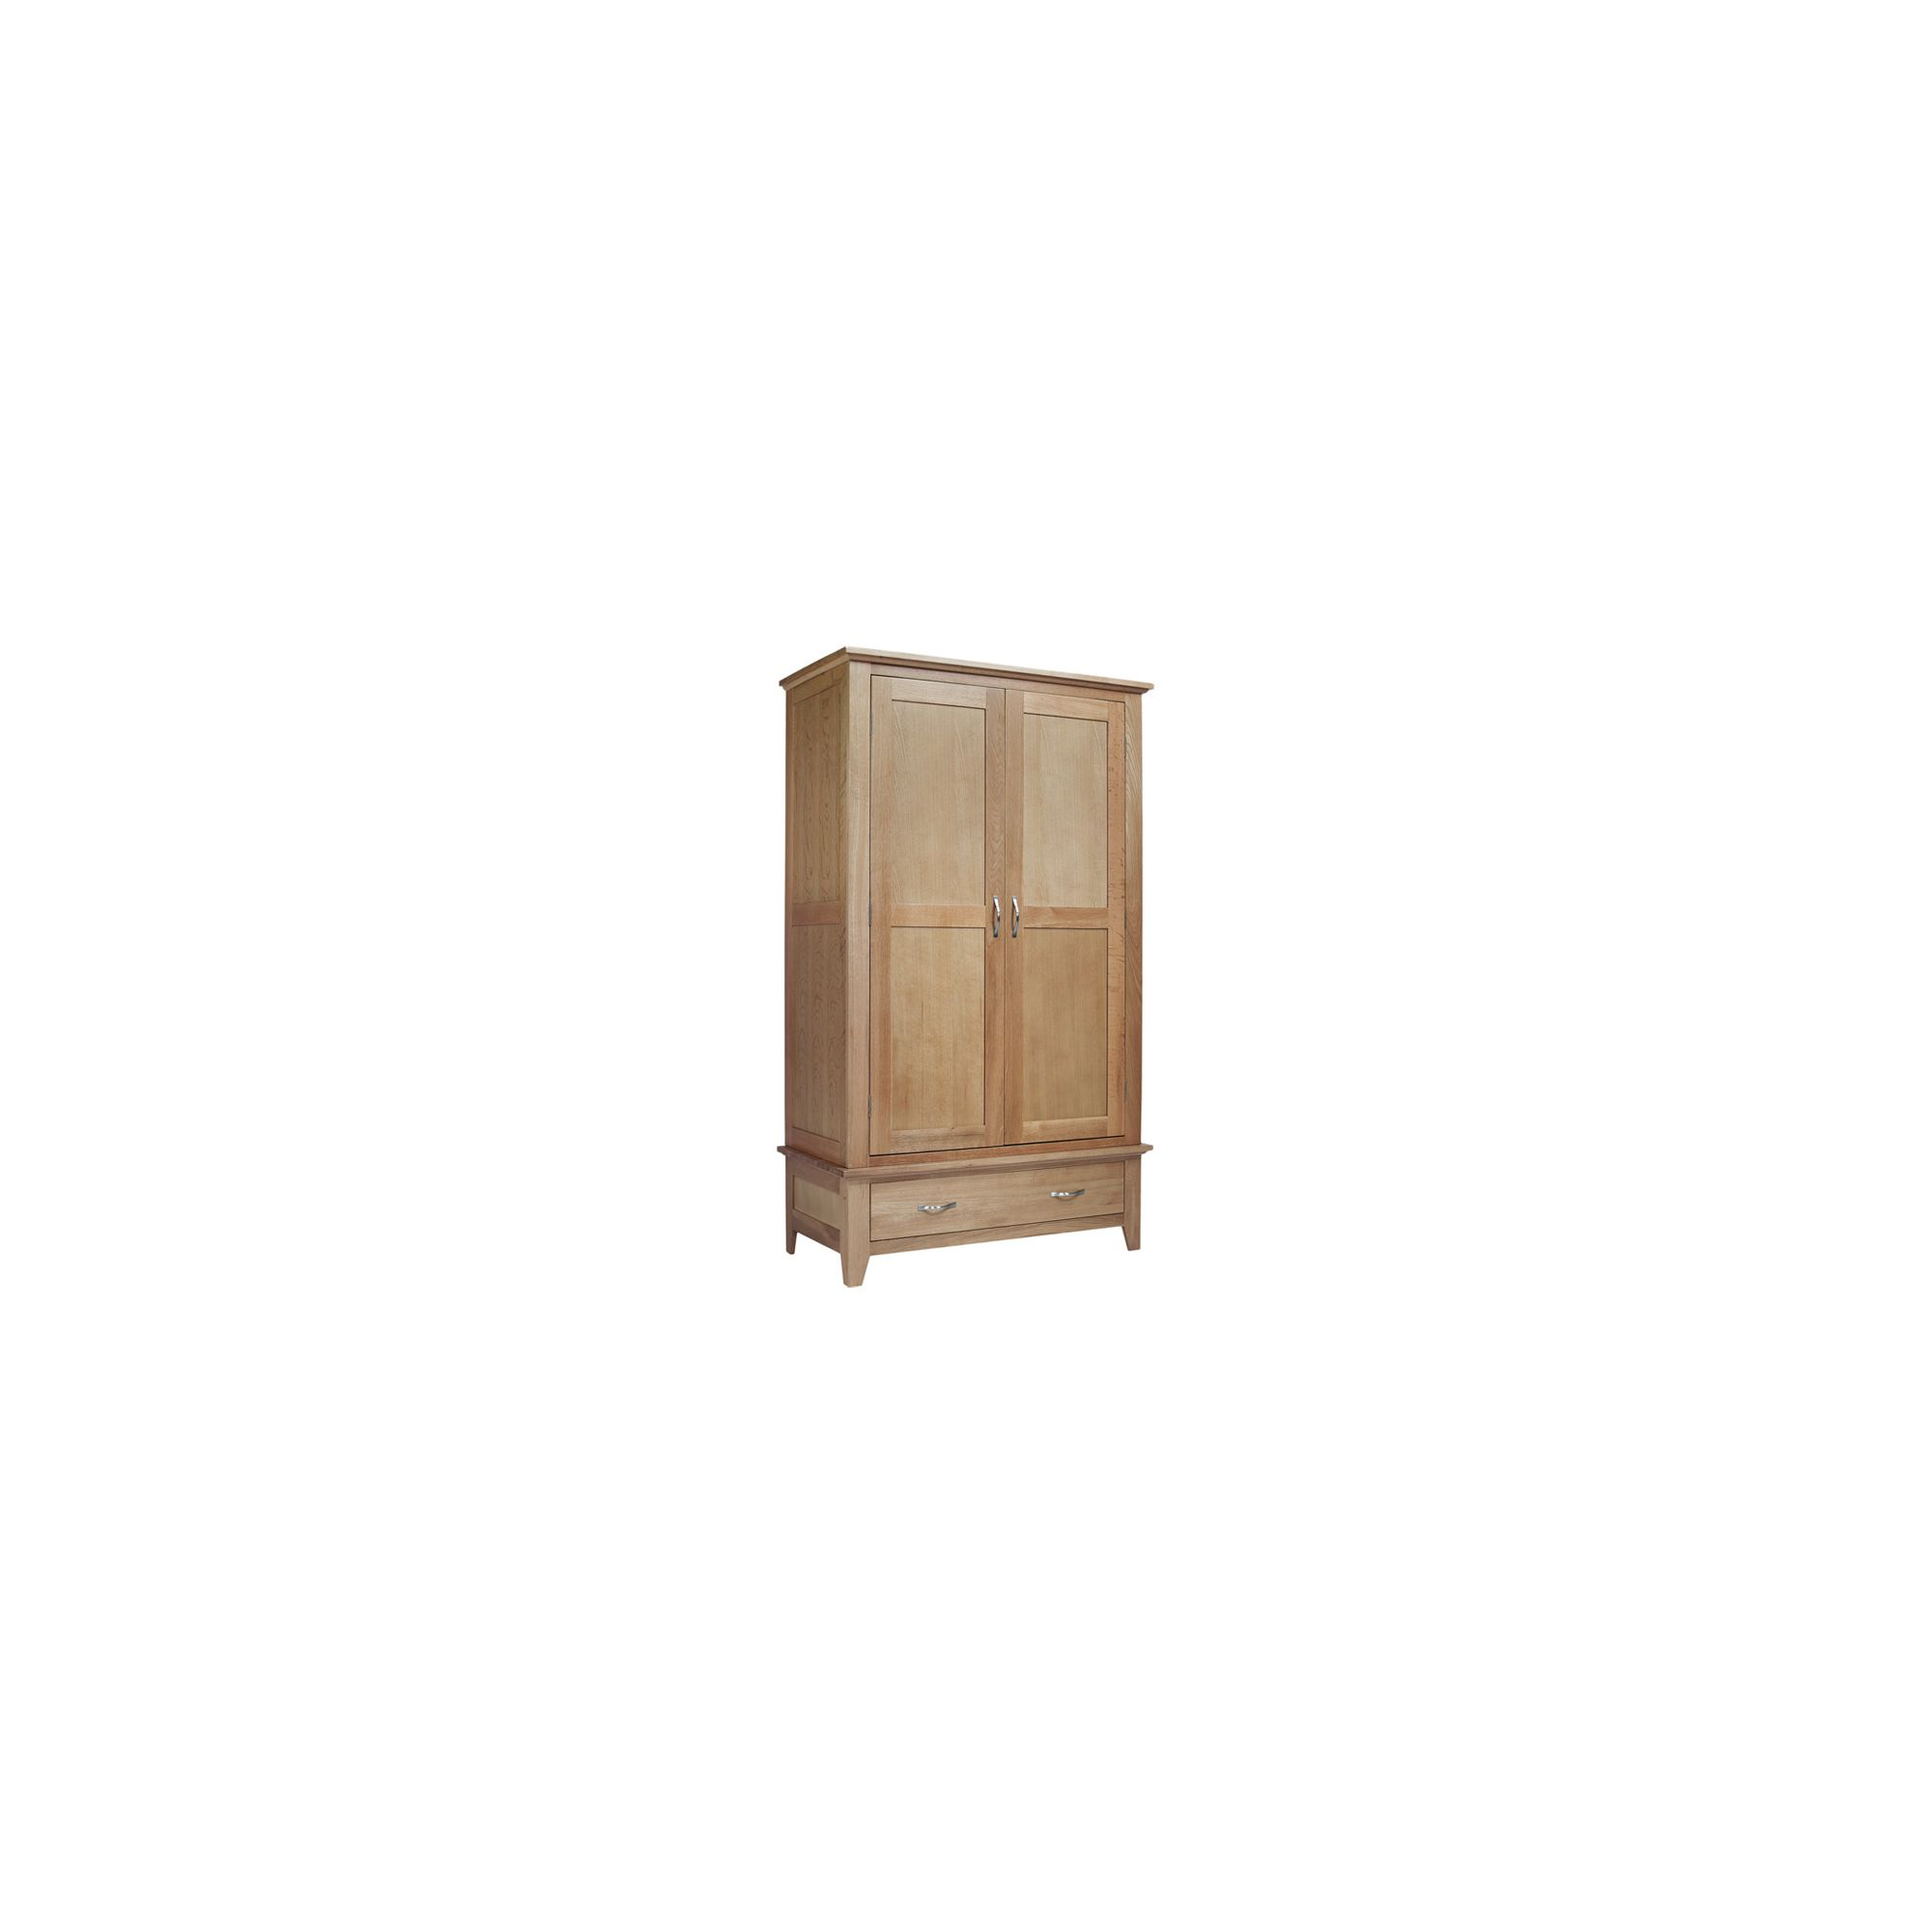 Ametis Sherwood Oak One Drawer Double Wardrobe at Tescos Direct